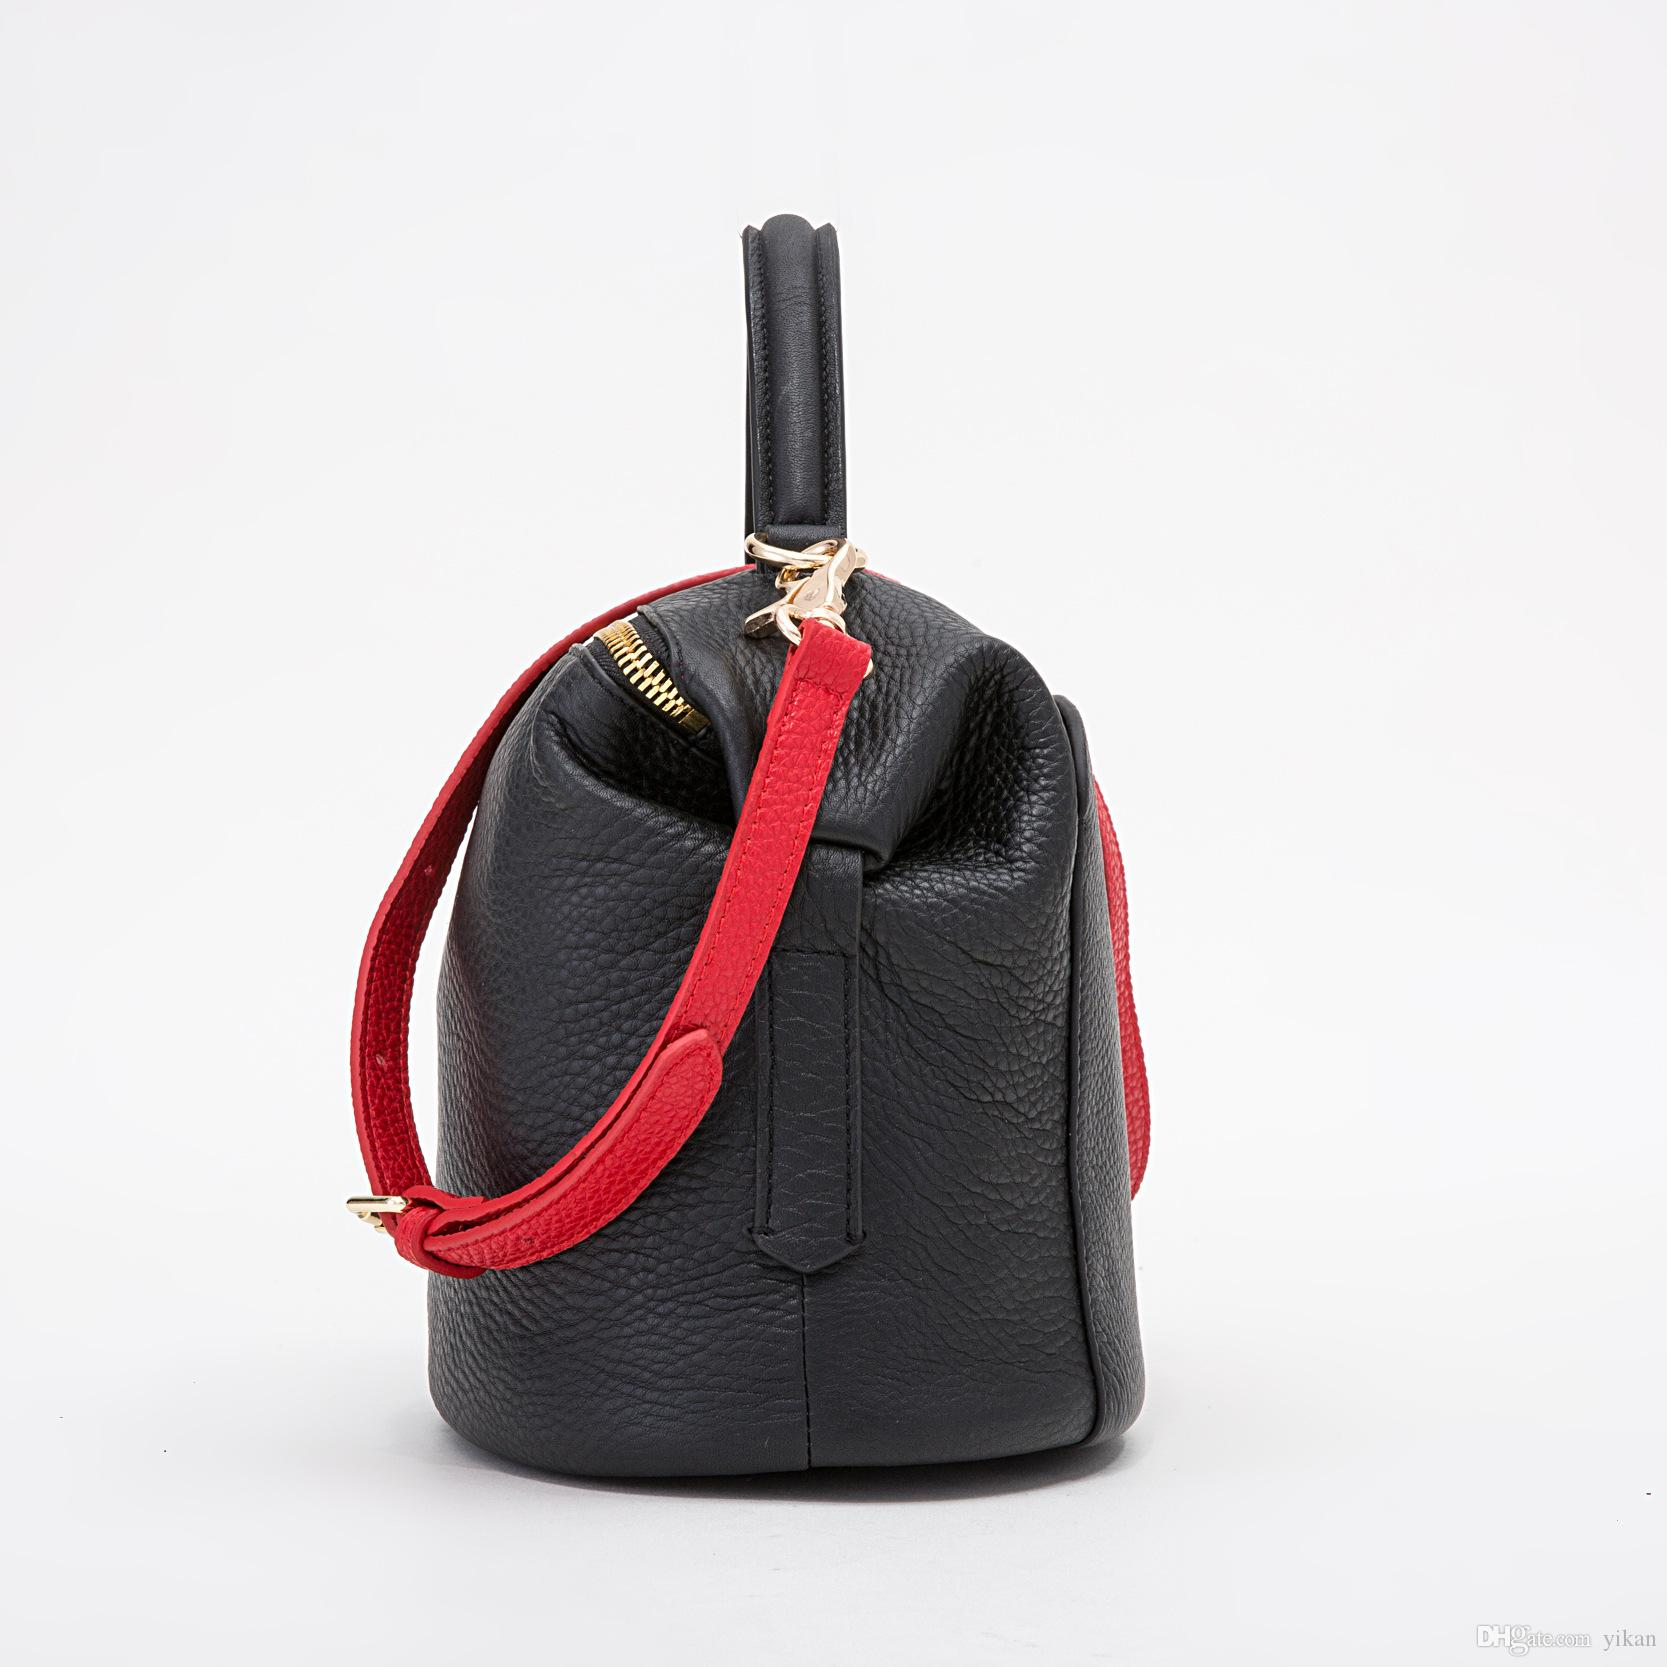 Hot Style fashion women bags hot quality real leather Shoulder Bags handbag totes CrossBody bag for ladies